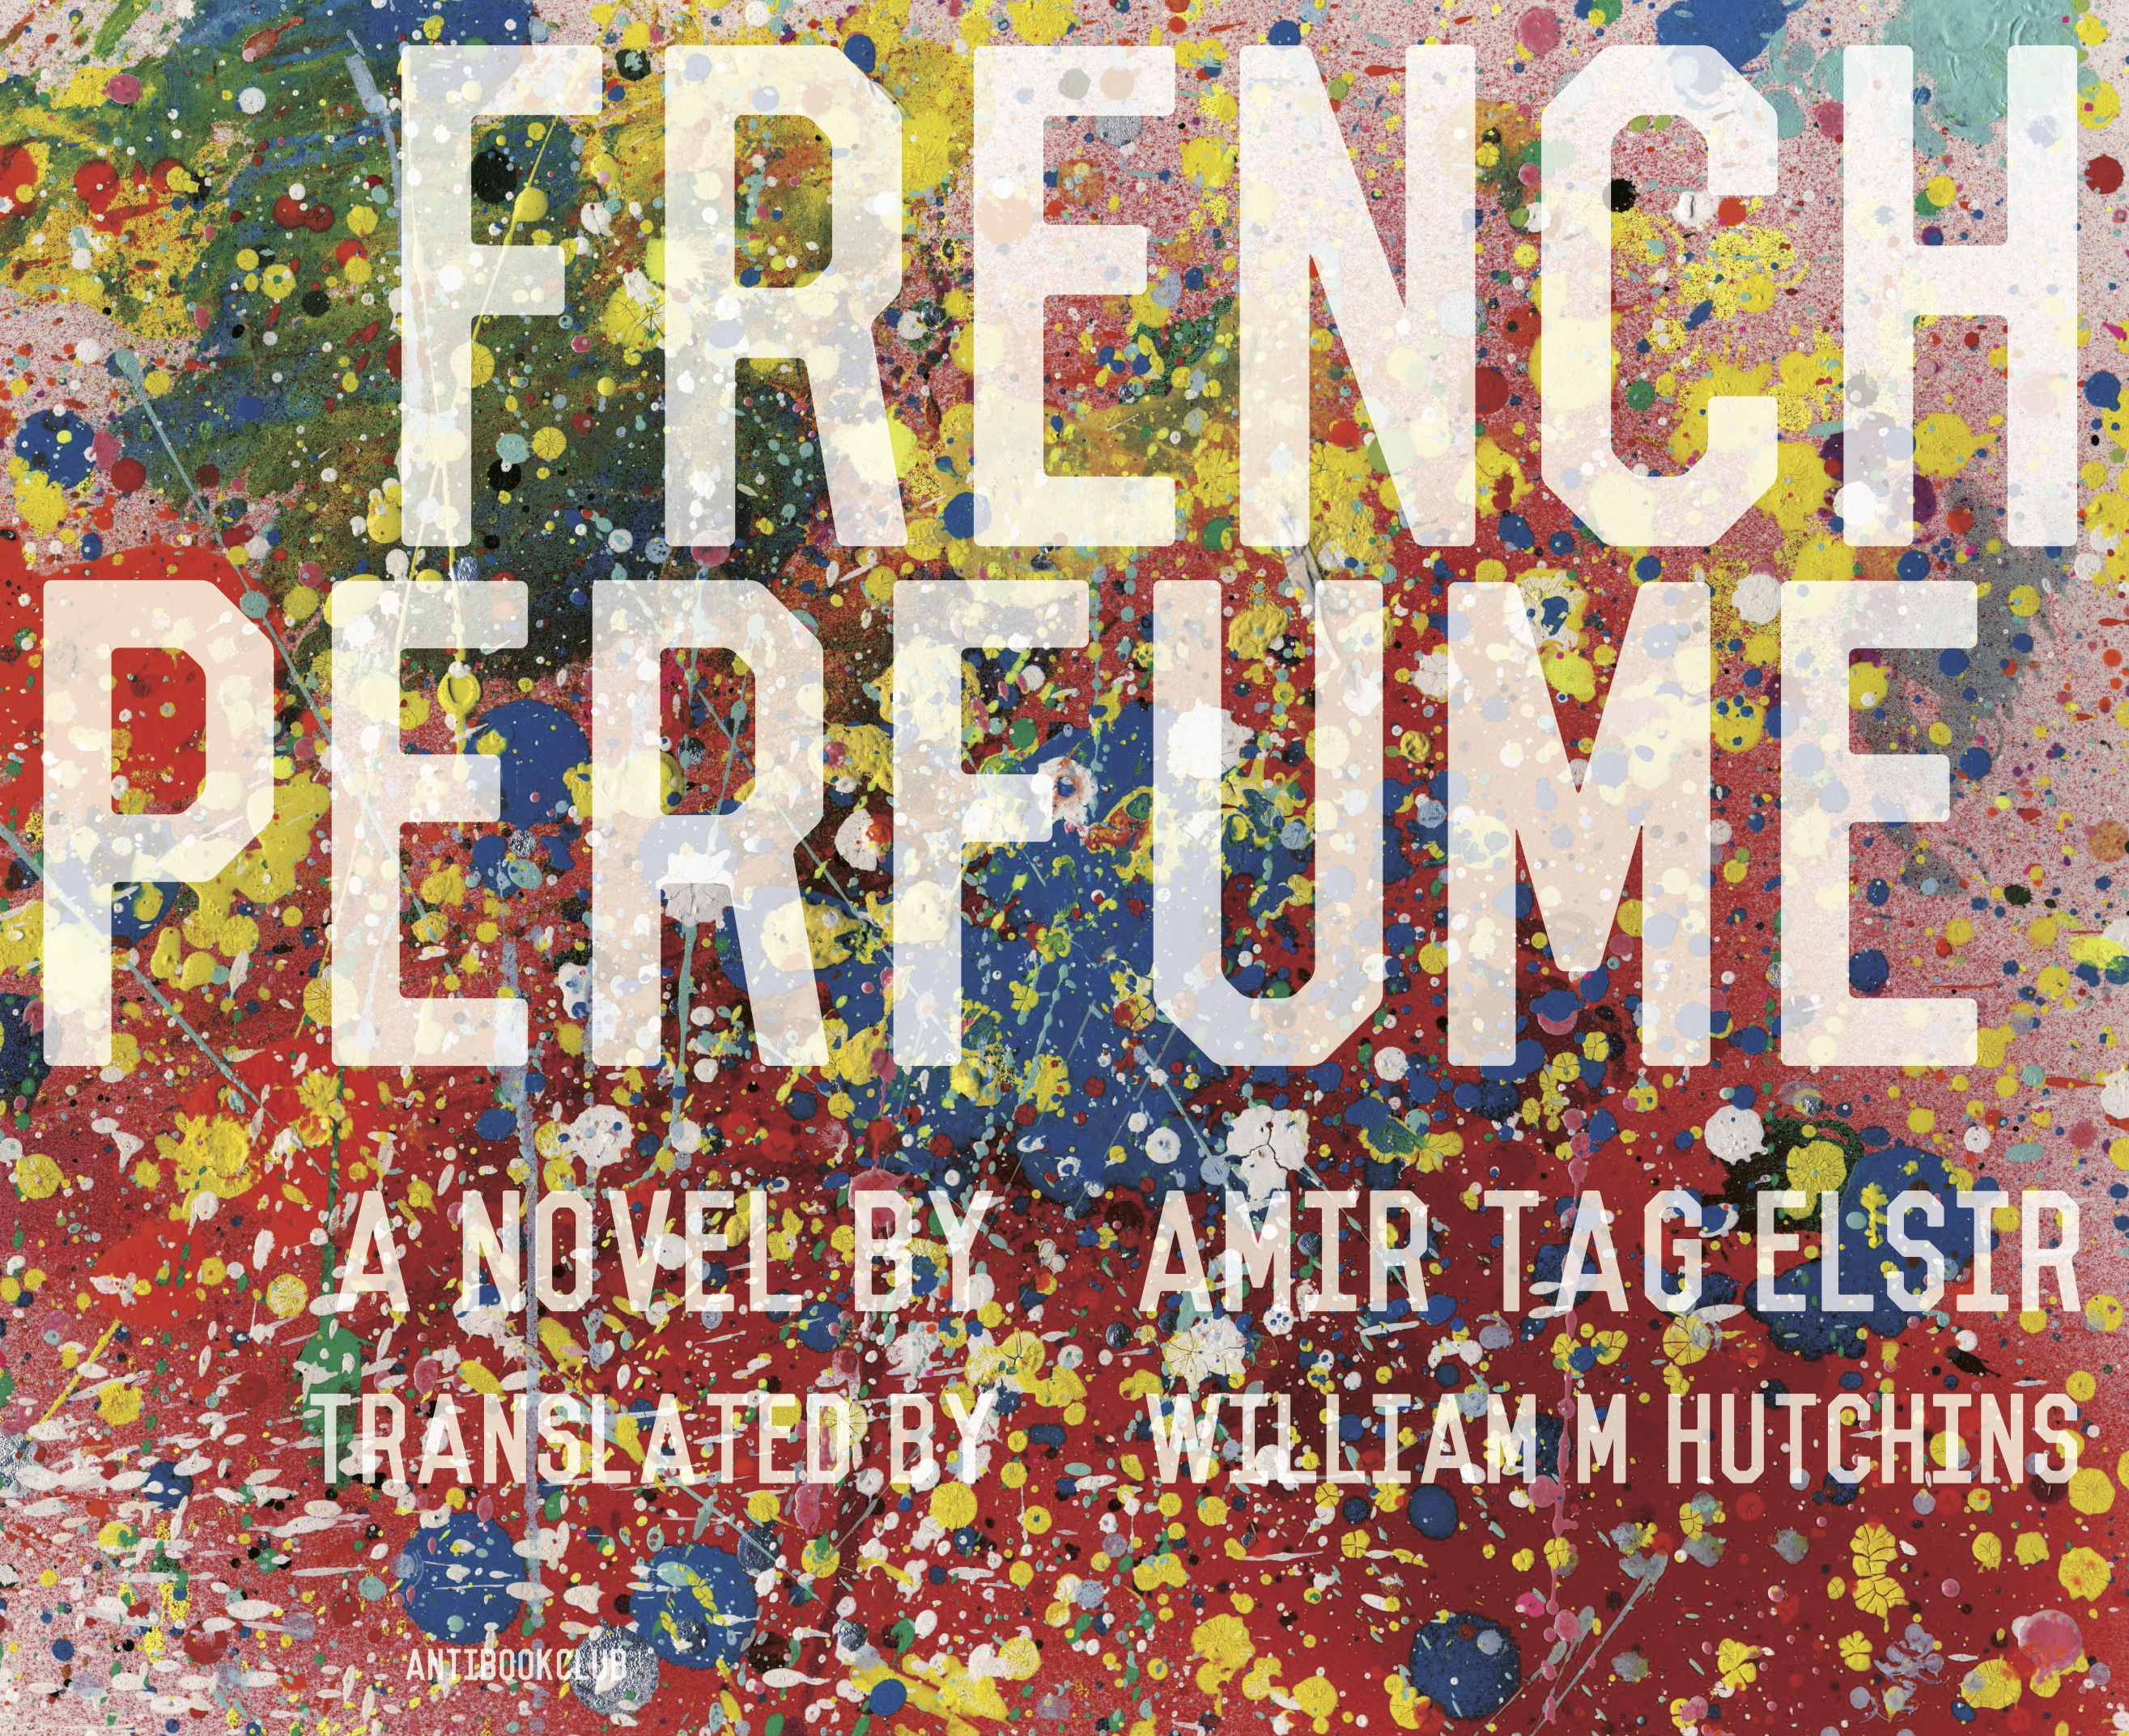 French Perfume_book cover